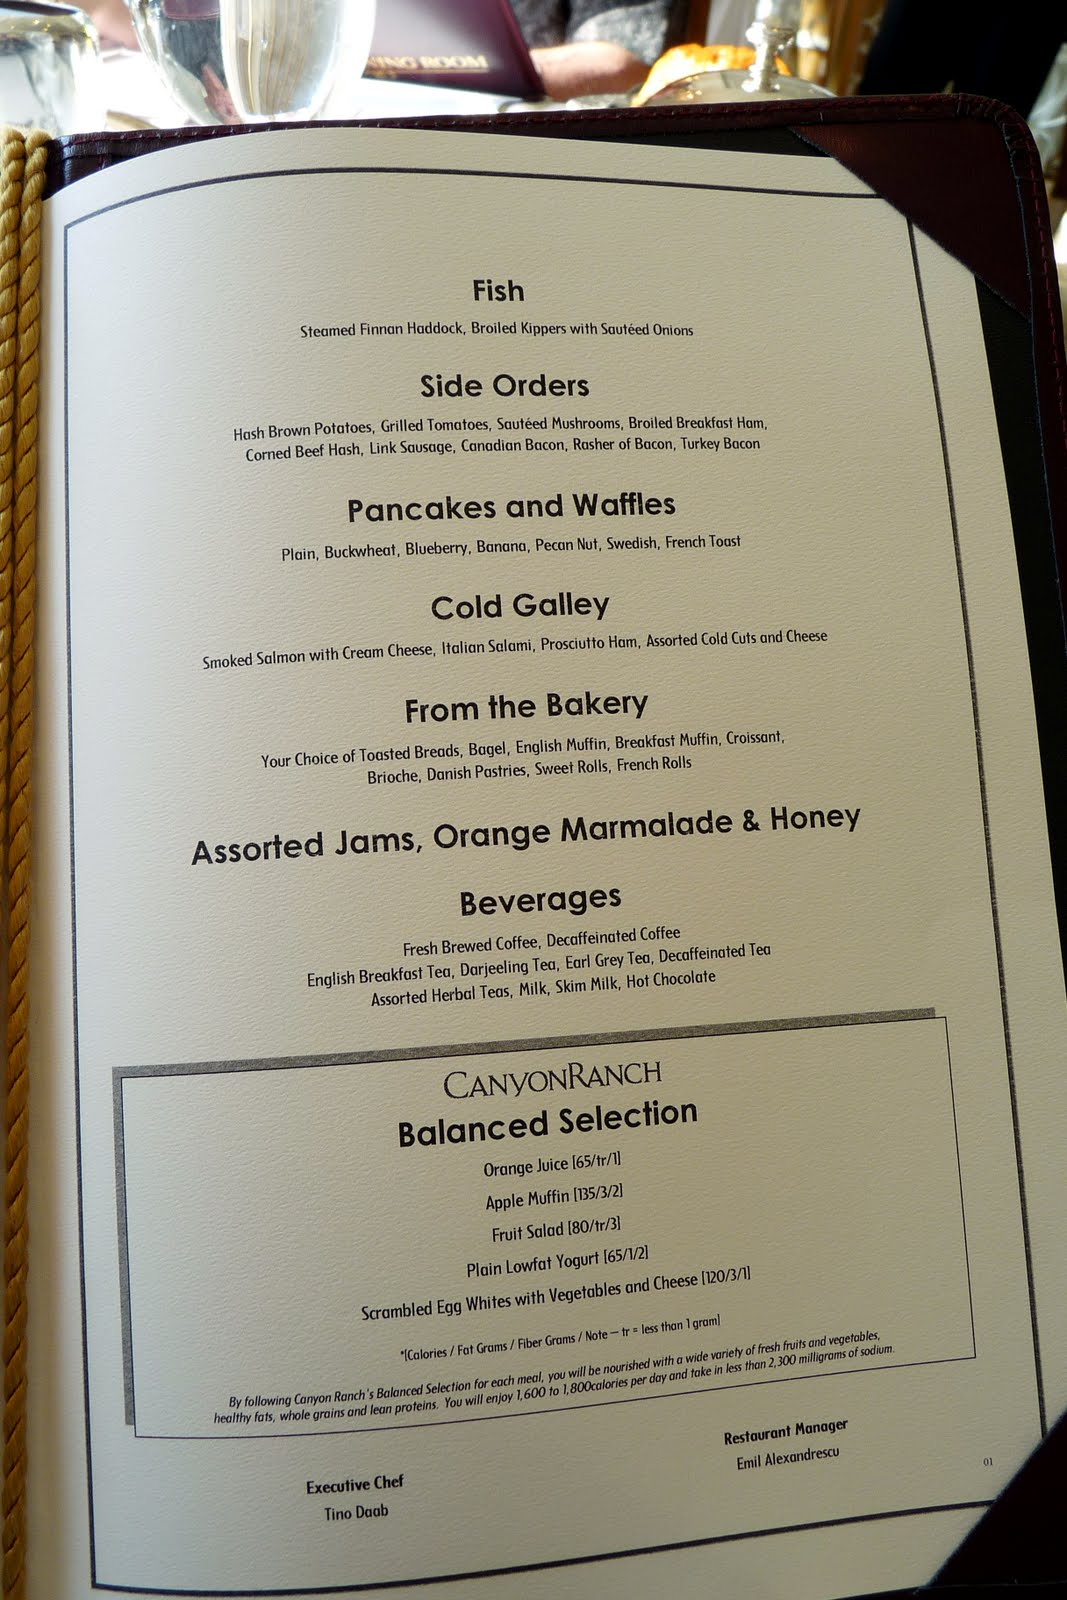 Schecktrek day 2 venice oceania cruise for W hotel in room dining menu